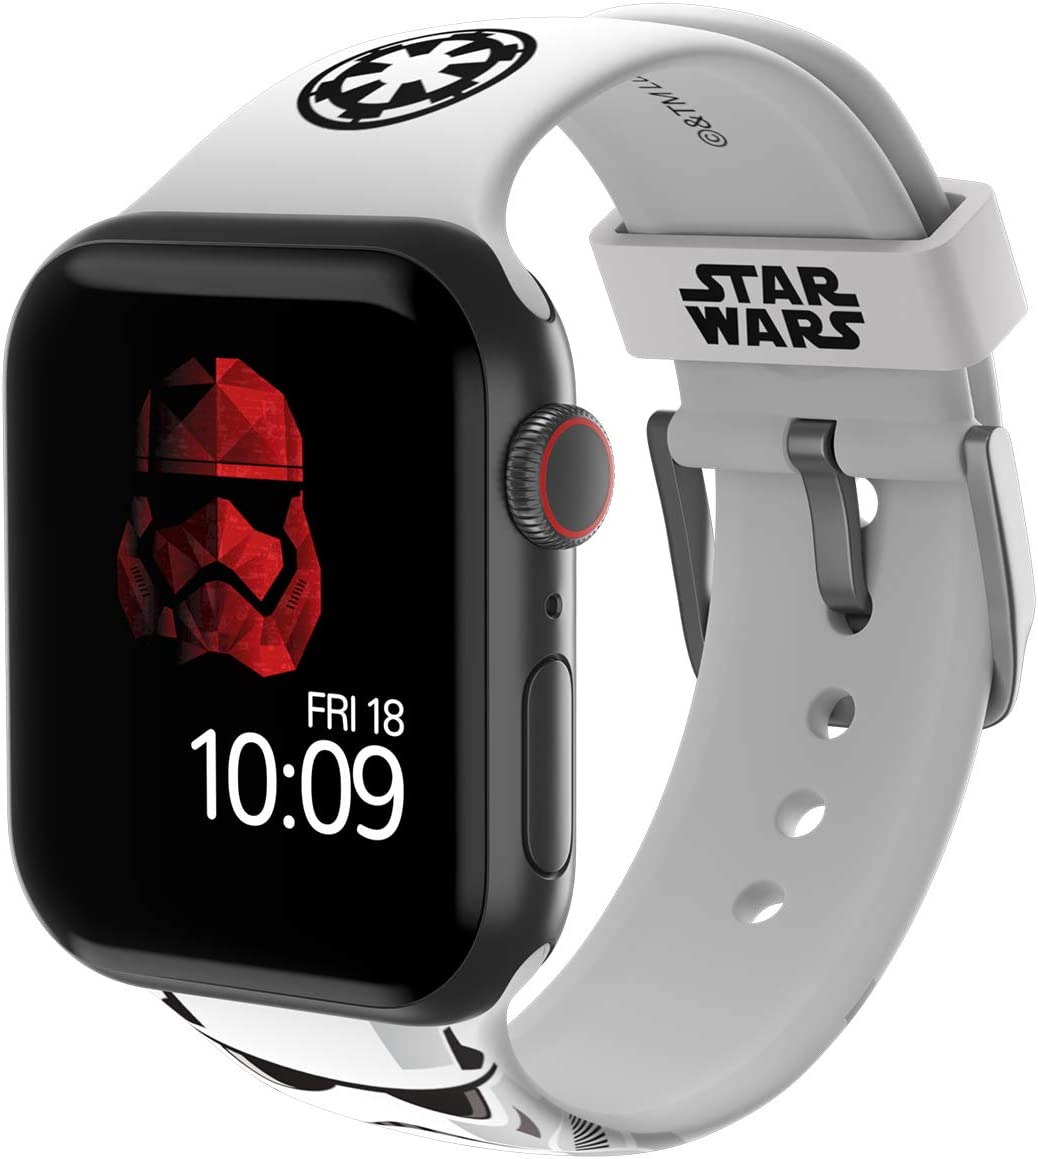 Star Wars - Stormtrooper Edition – Officially Licensed Silicone Smartwatch Band Compatible with Apple Watch, Fits 42mm and 44mm